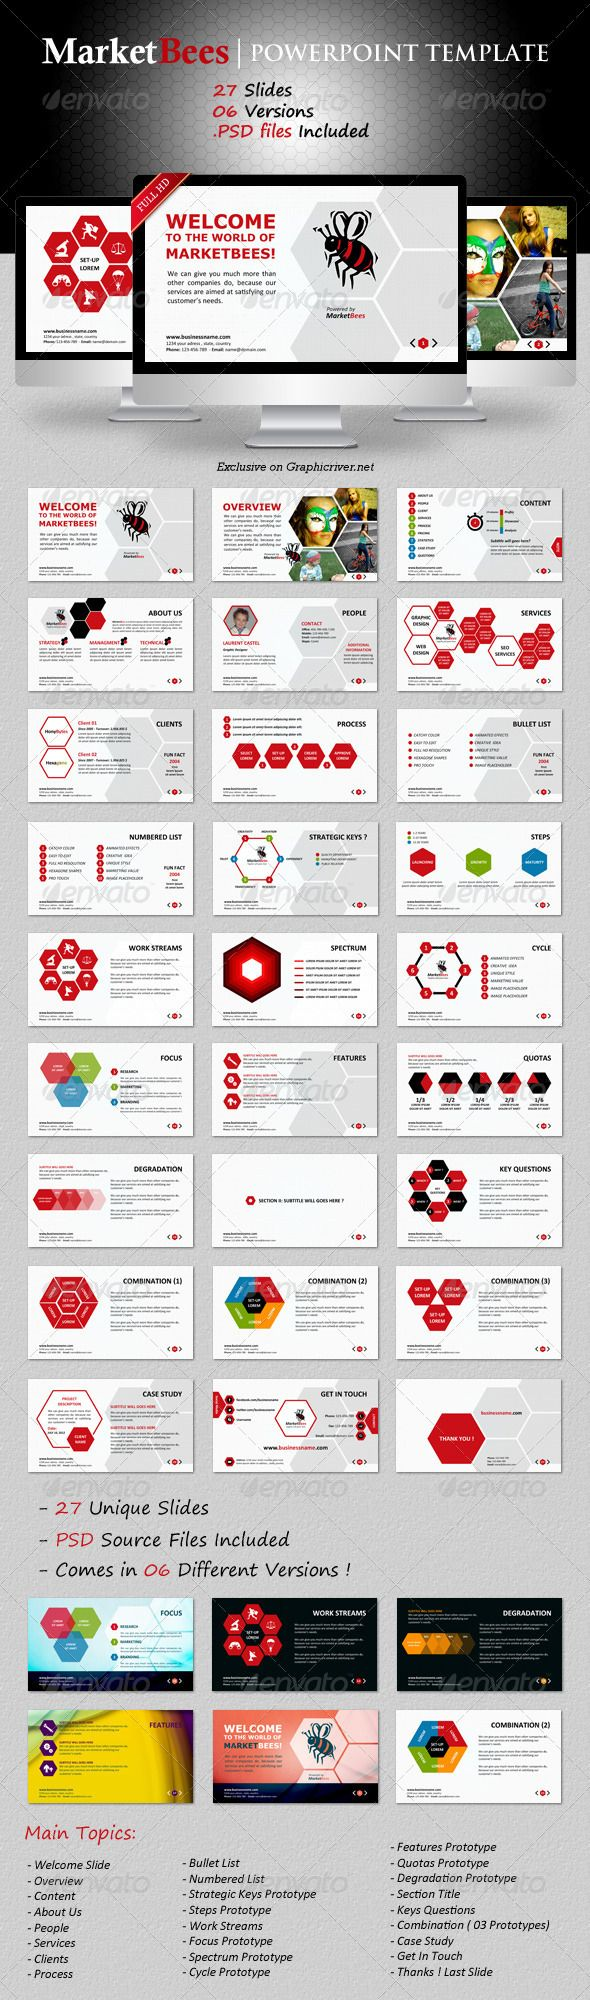 Best 25 business powerpoint templates ideas on pinterest marketbees powerpoint template business powerpoint toneelgroepblik